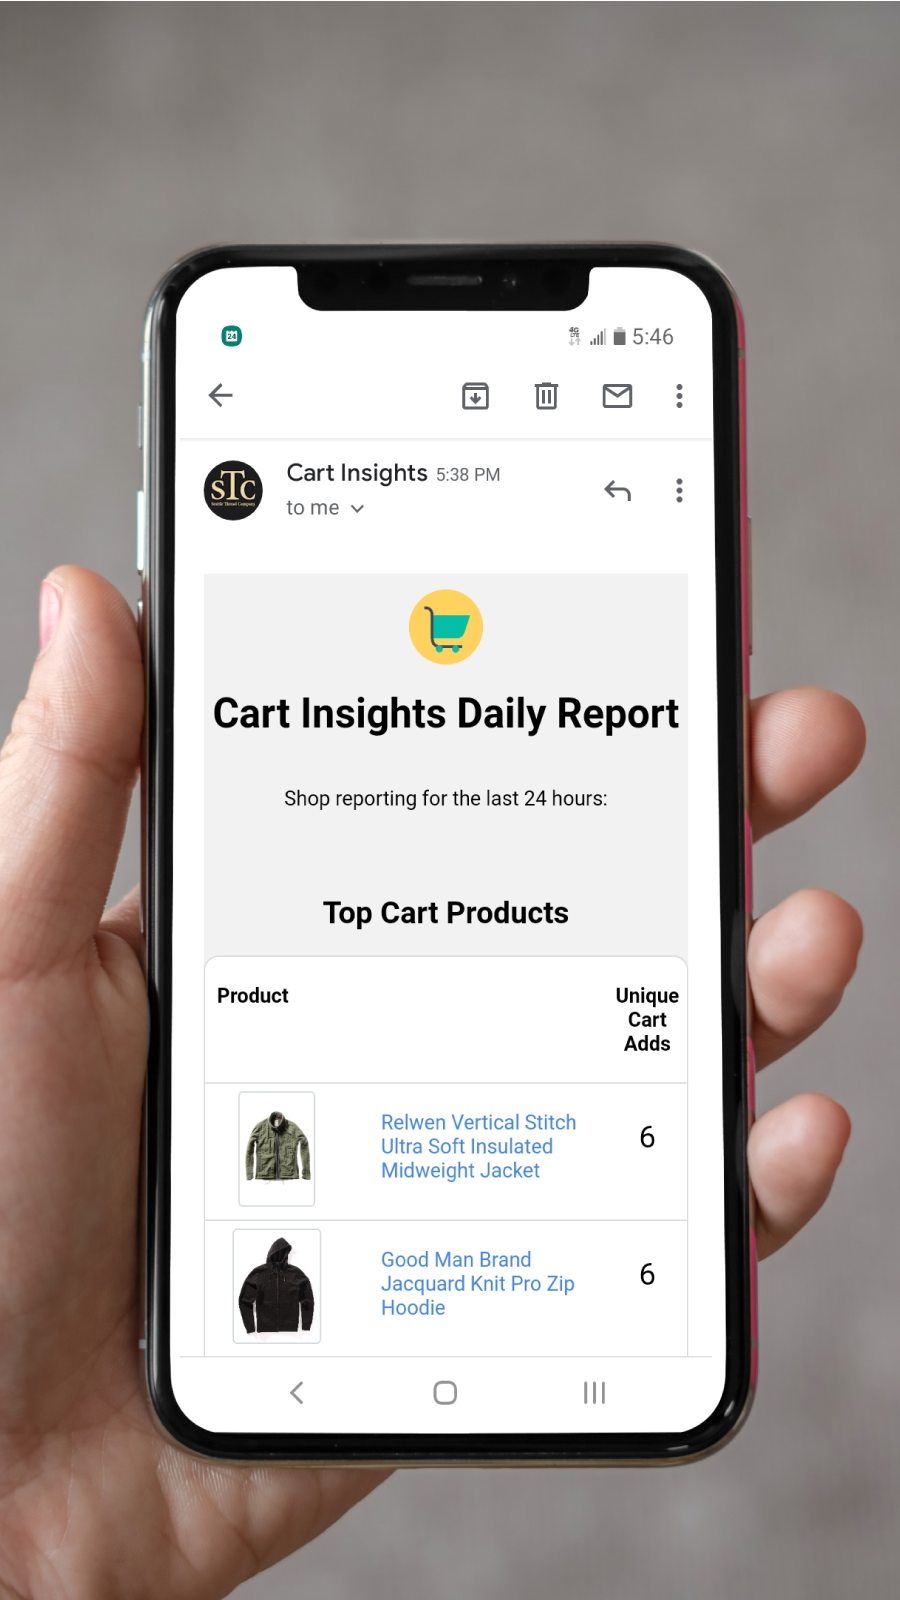 The Daily Email Report also displays well on mobile screens